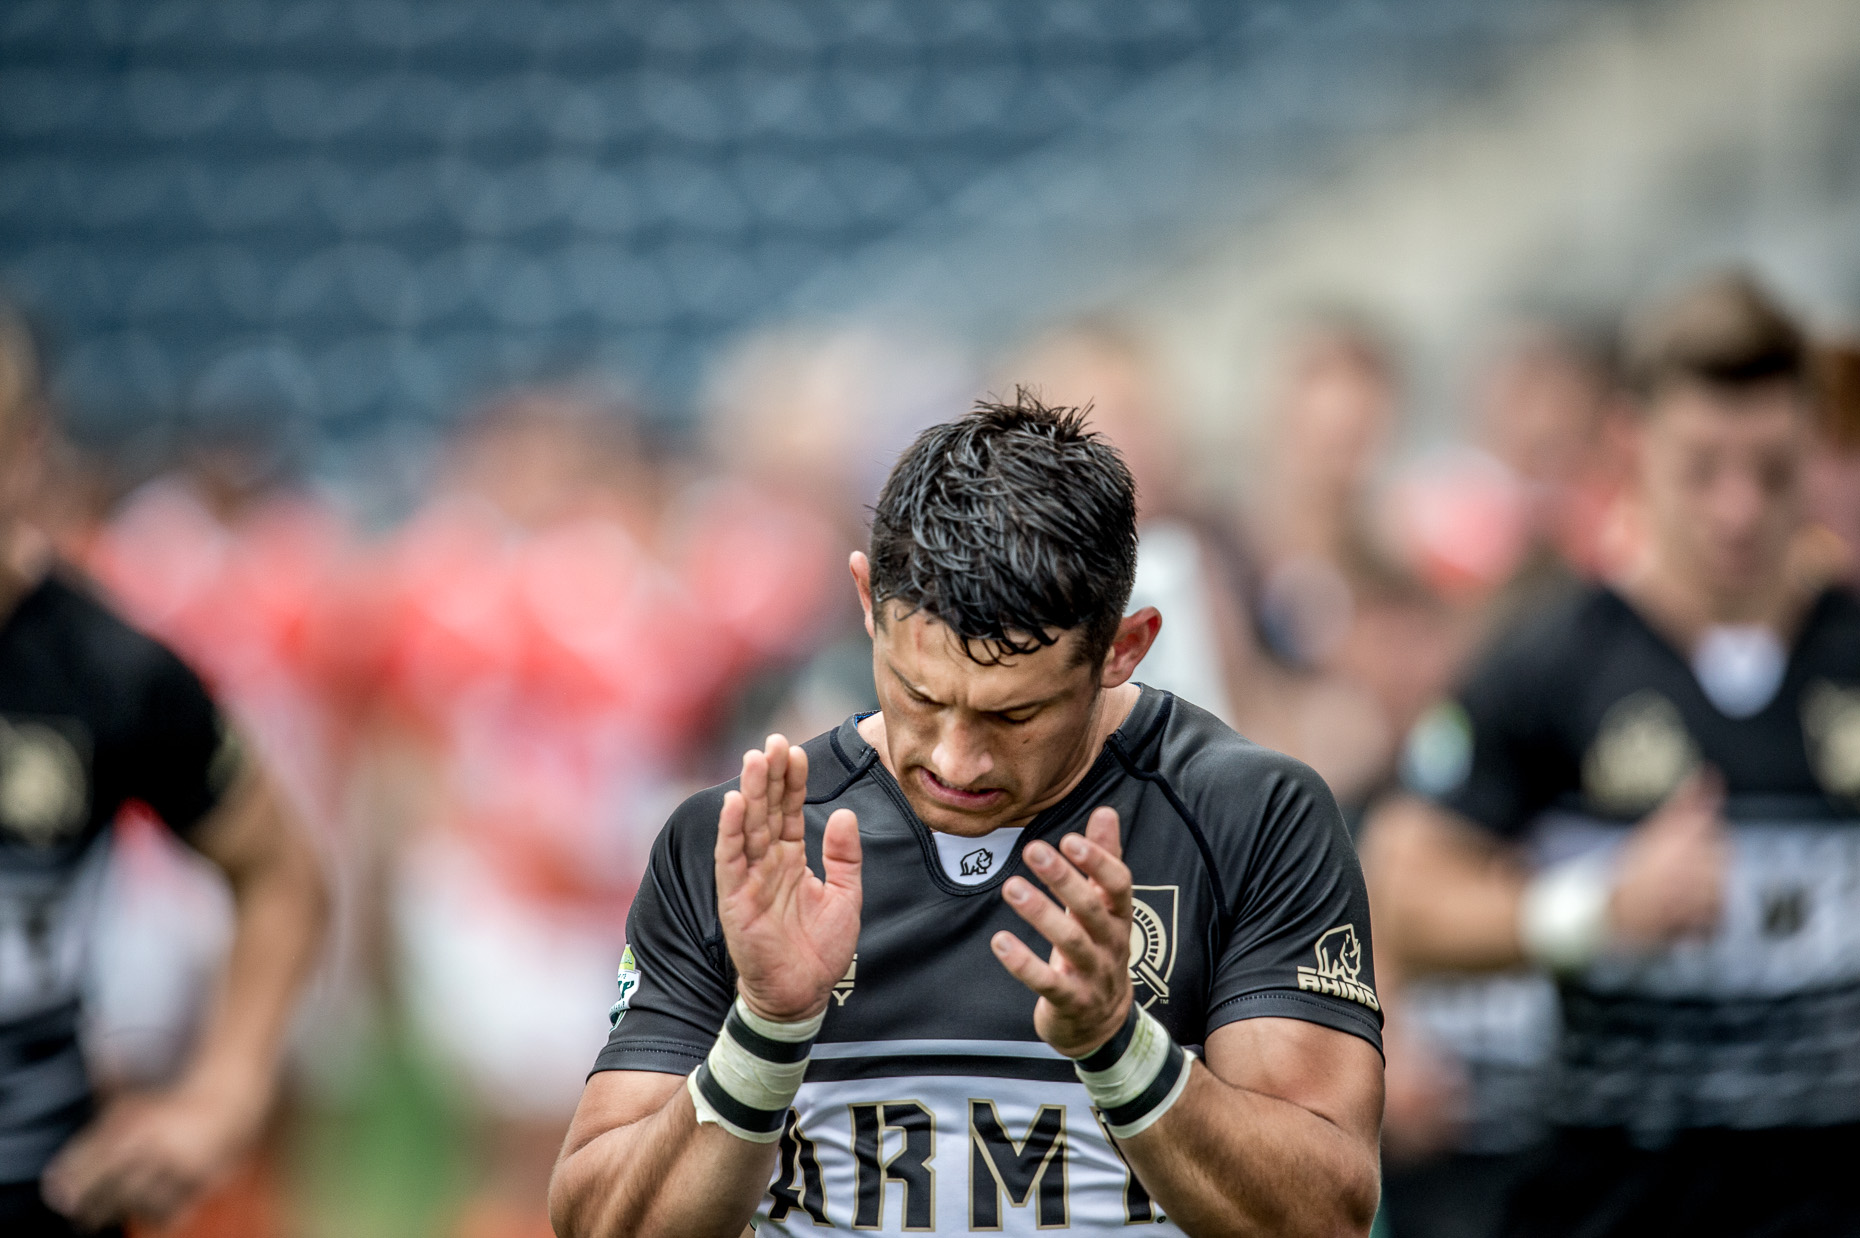 Lifestyle Photographer - Rugby player applauds - Sports